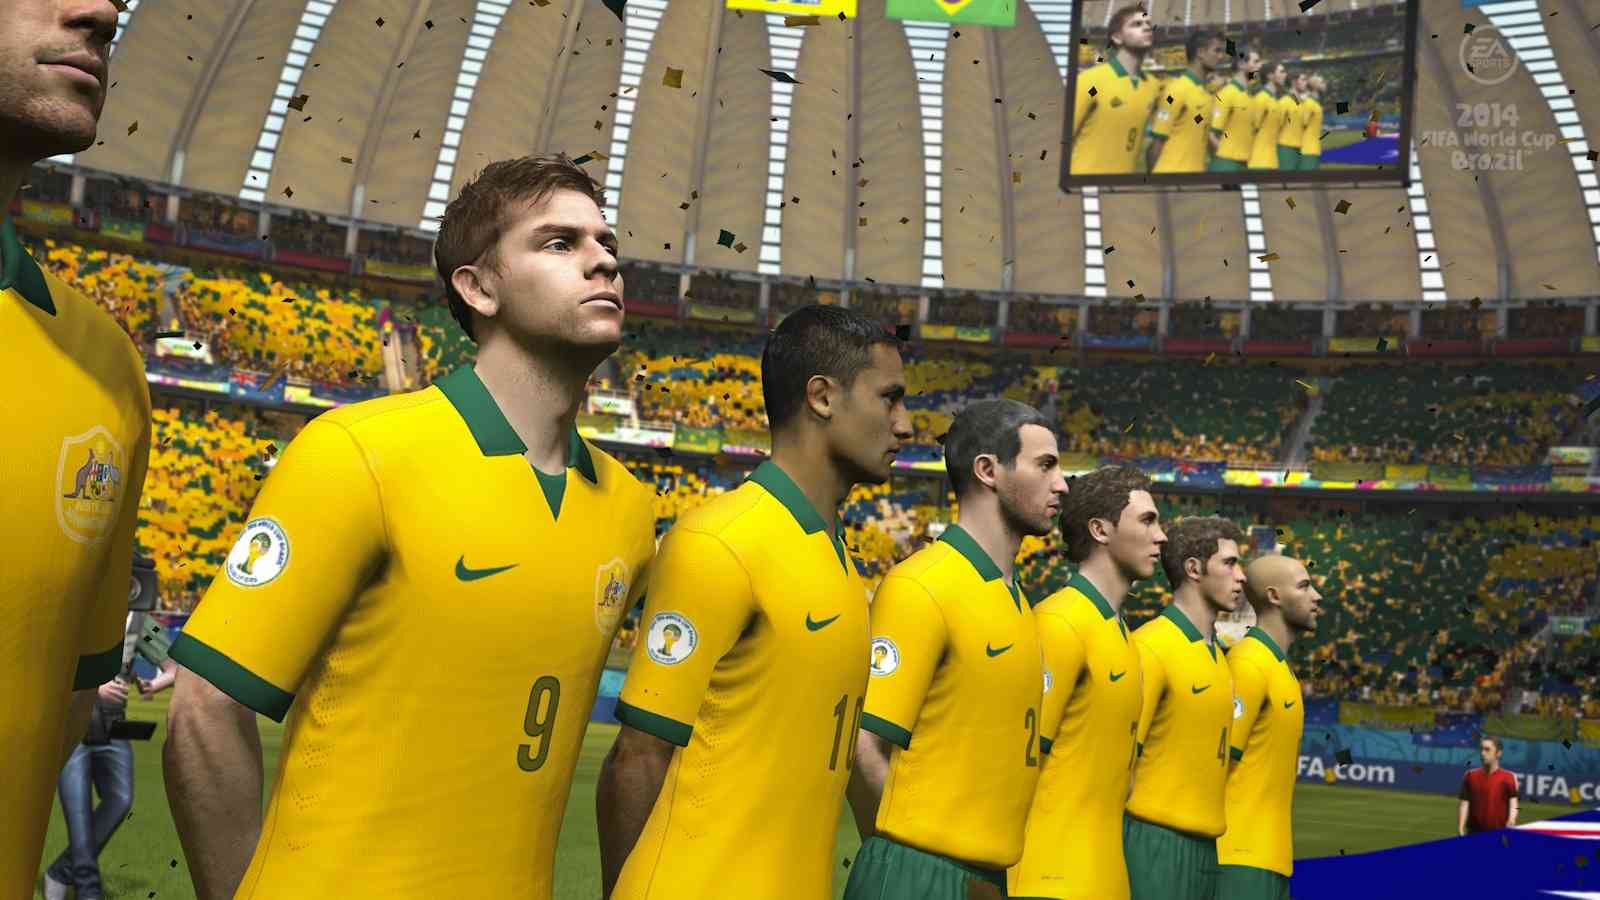 Canadian Online Gamers 187 2014 Fifa World Cup Brazil Xbox